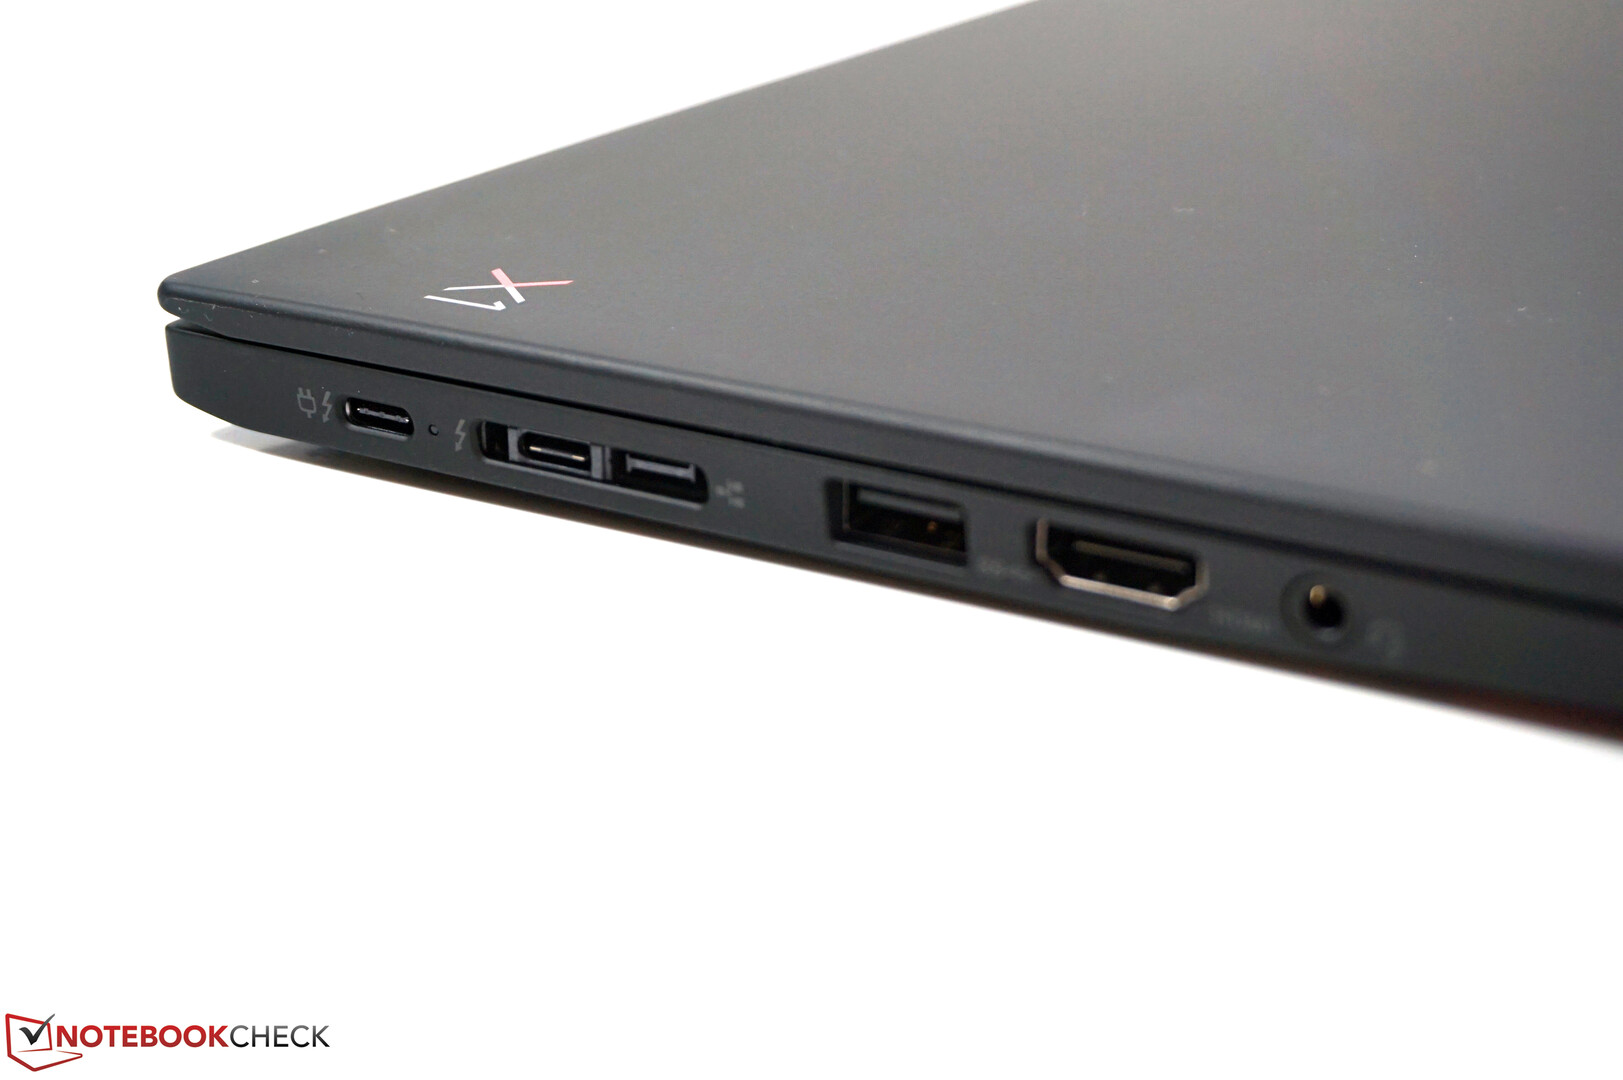 Lenovo Thinkpad X1 Carbon 2019 With Full Hd Laptop Review